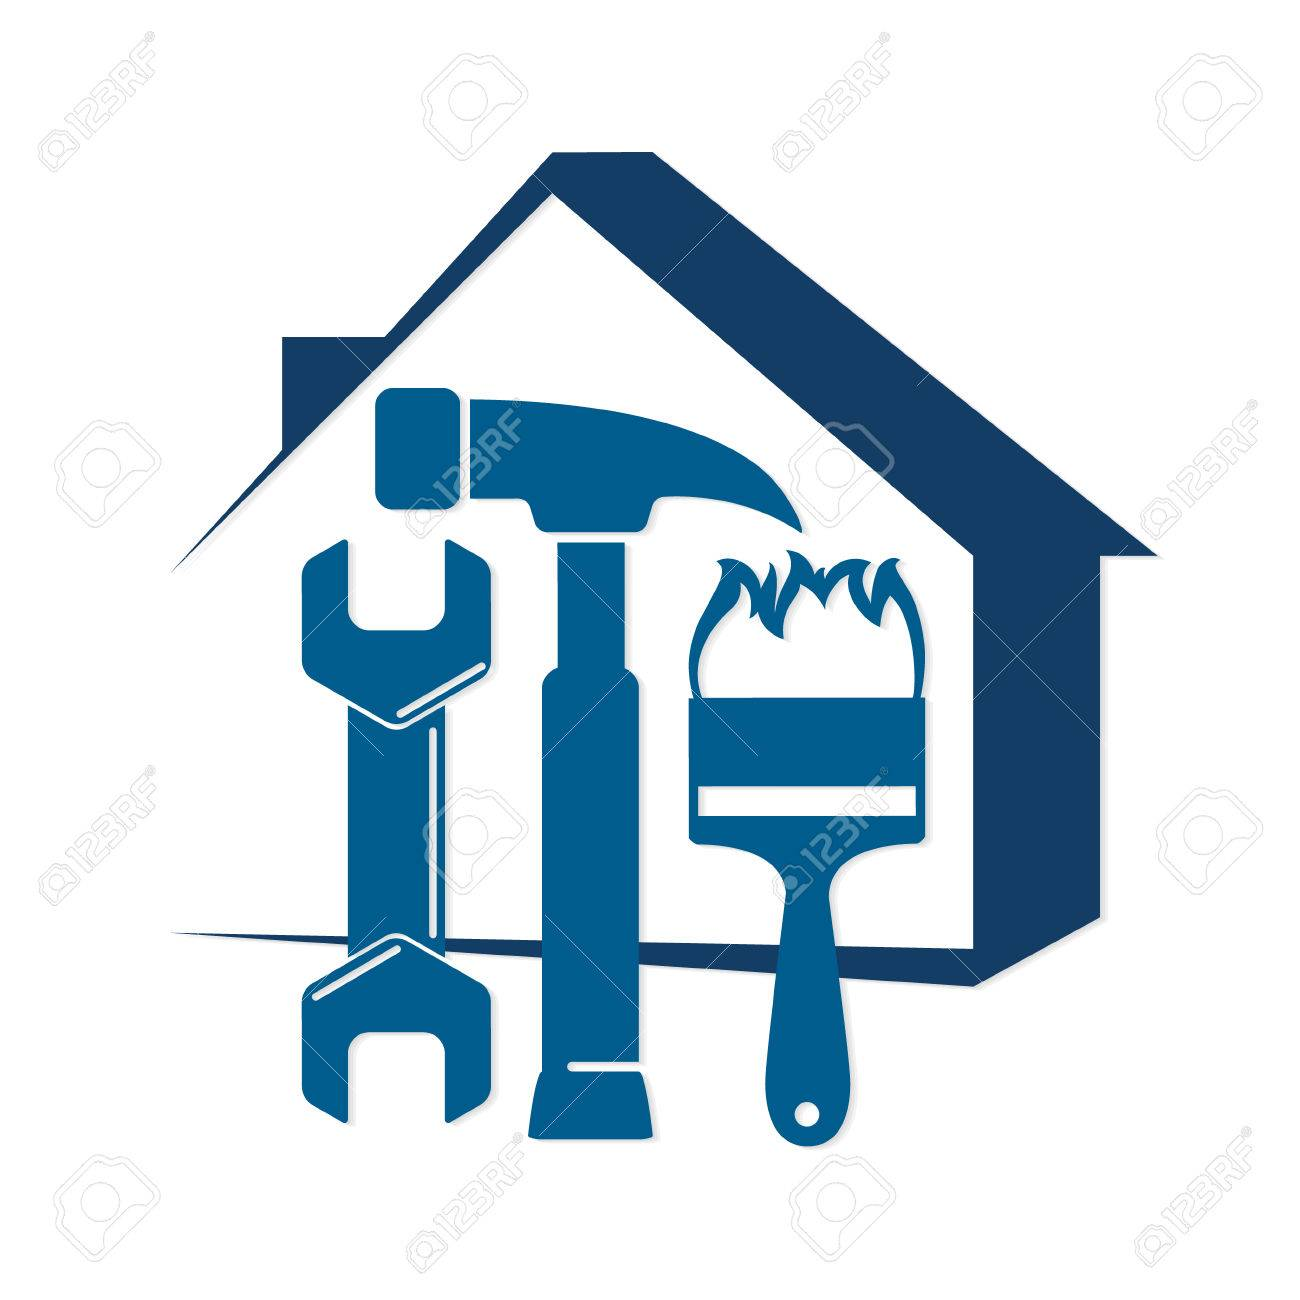 Repair of home with a tool, for business symbol - 68739270